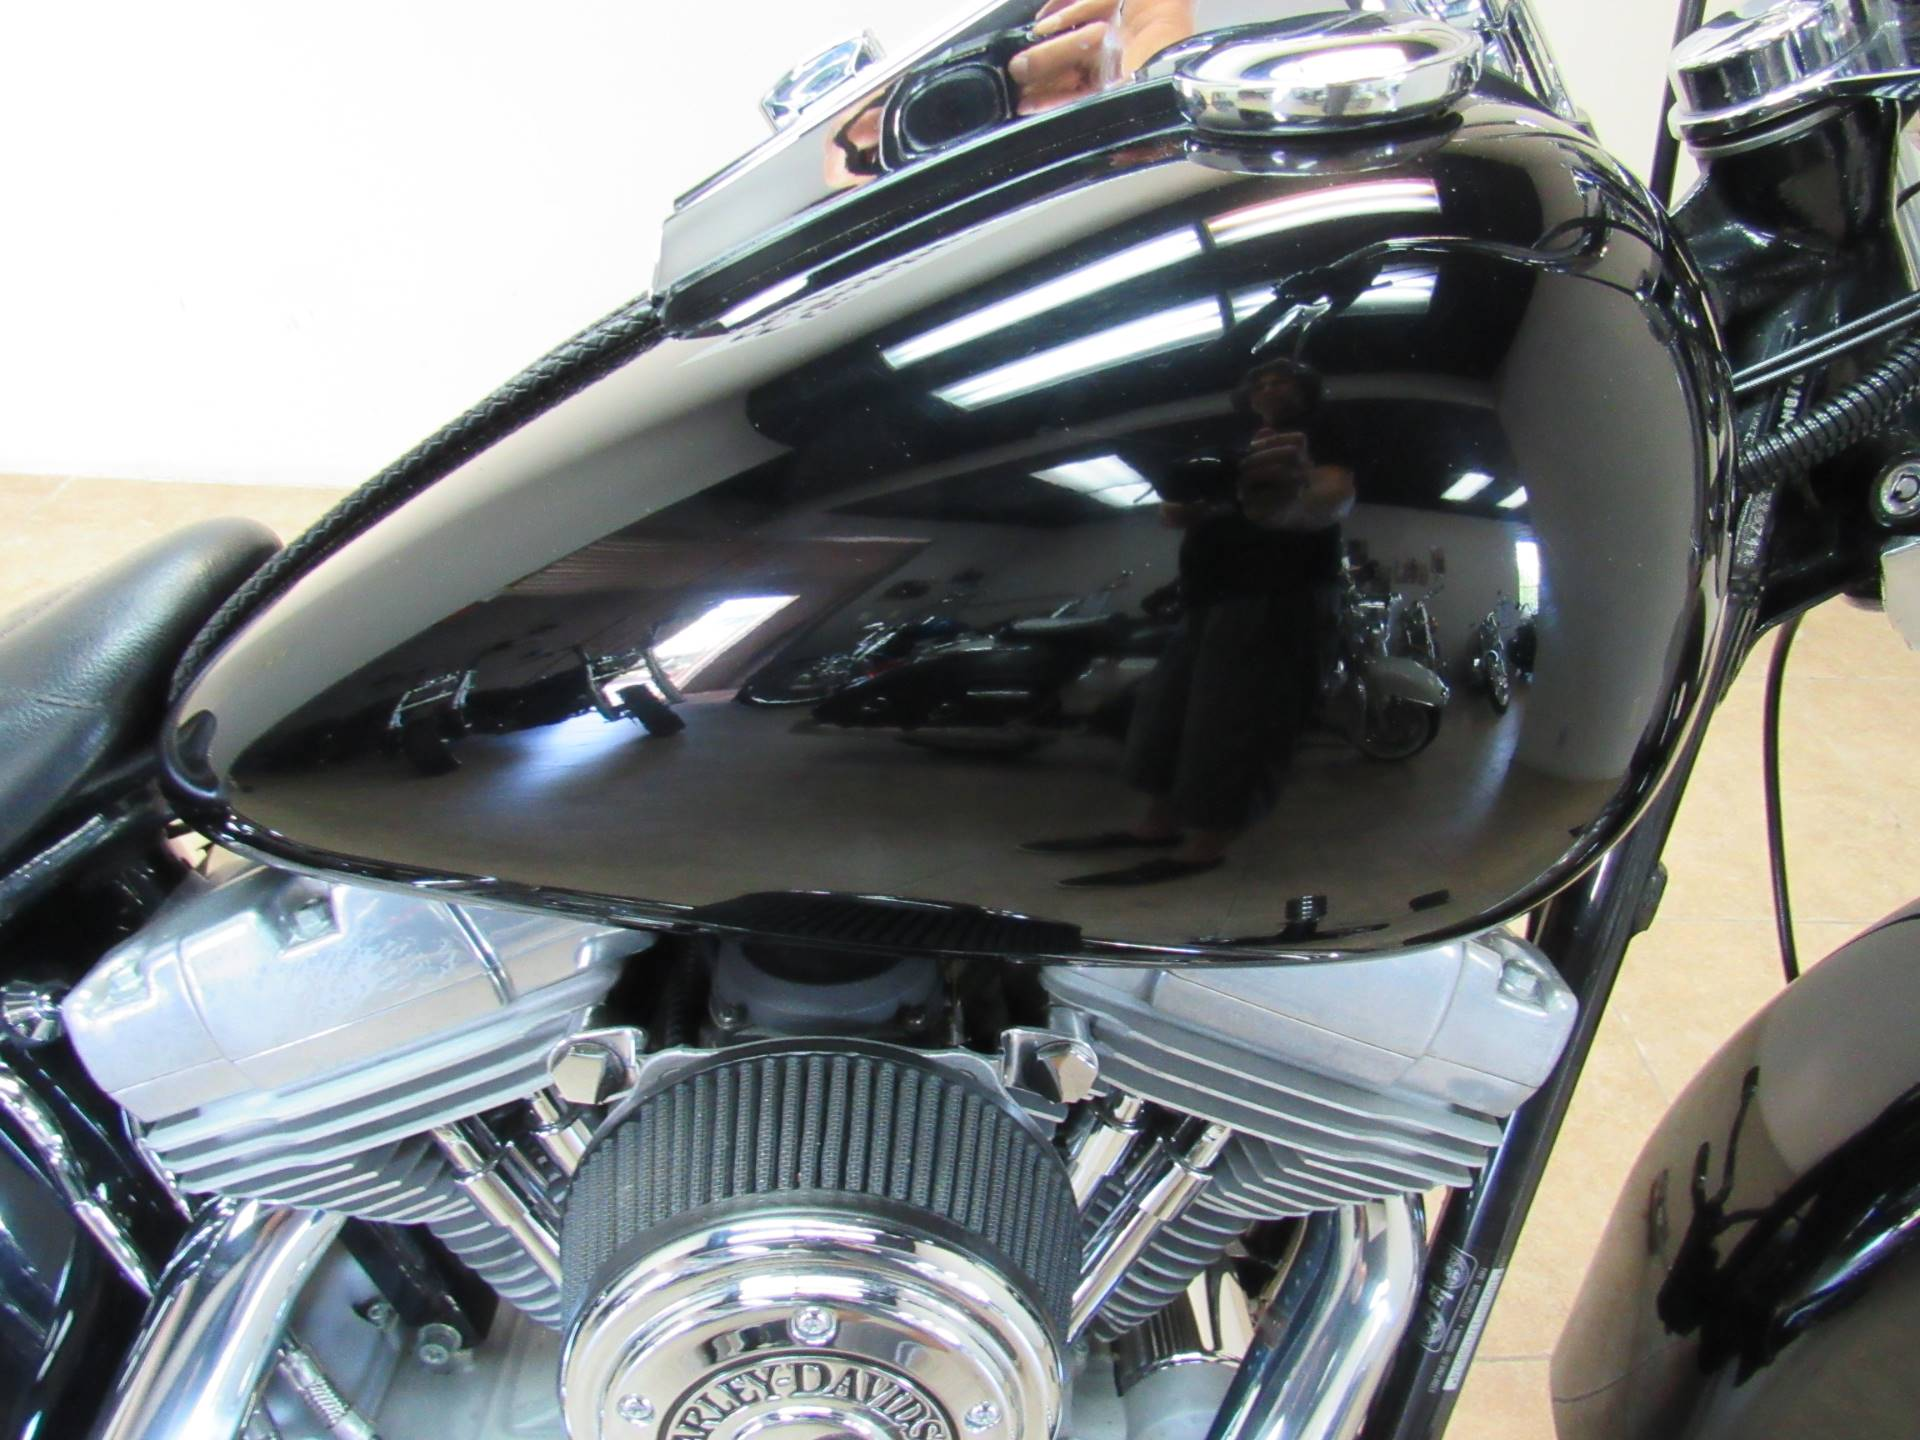 2002 Harley-Davidson FXST/FXSTI Softail®  Standard in Temecula, California - Photo 10